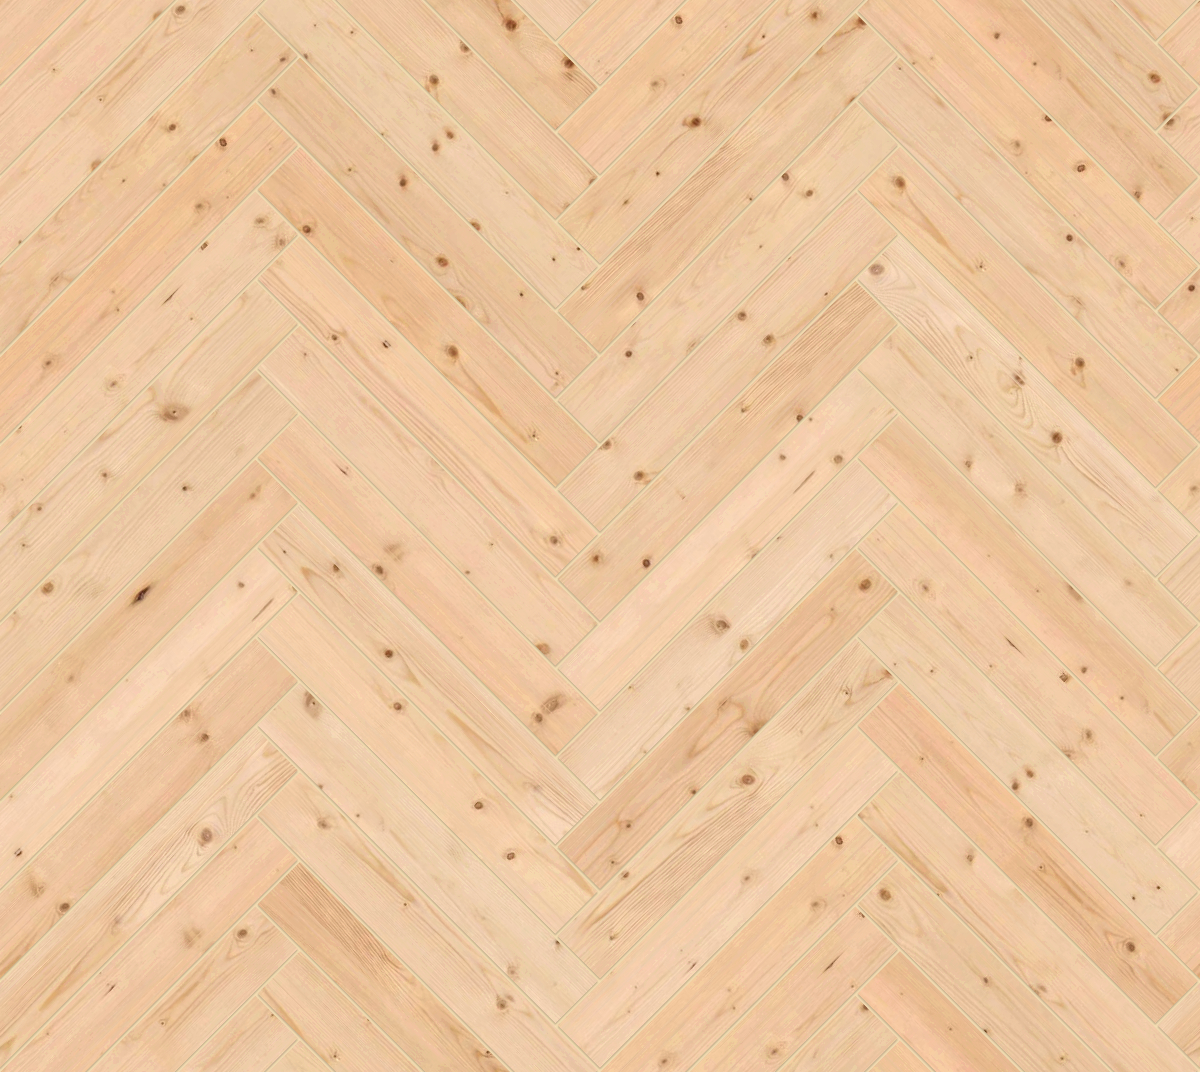 A seamless wood texture with knotted timber boards arranged in a herringbone pattern